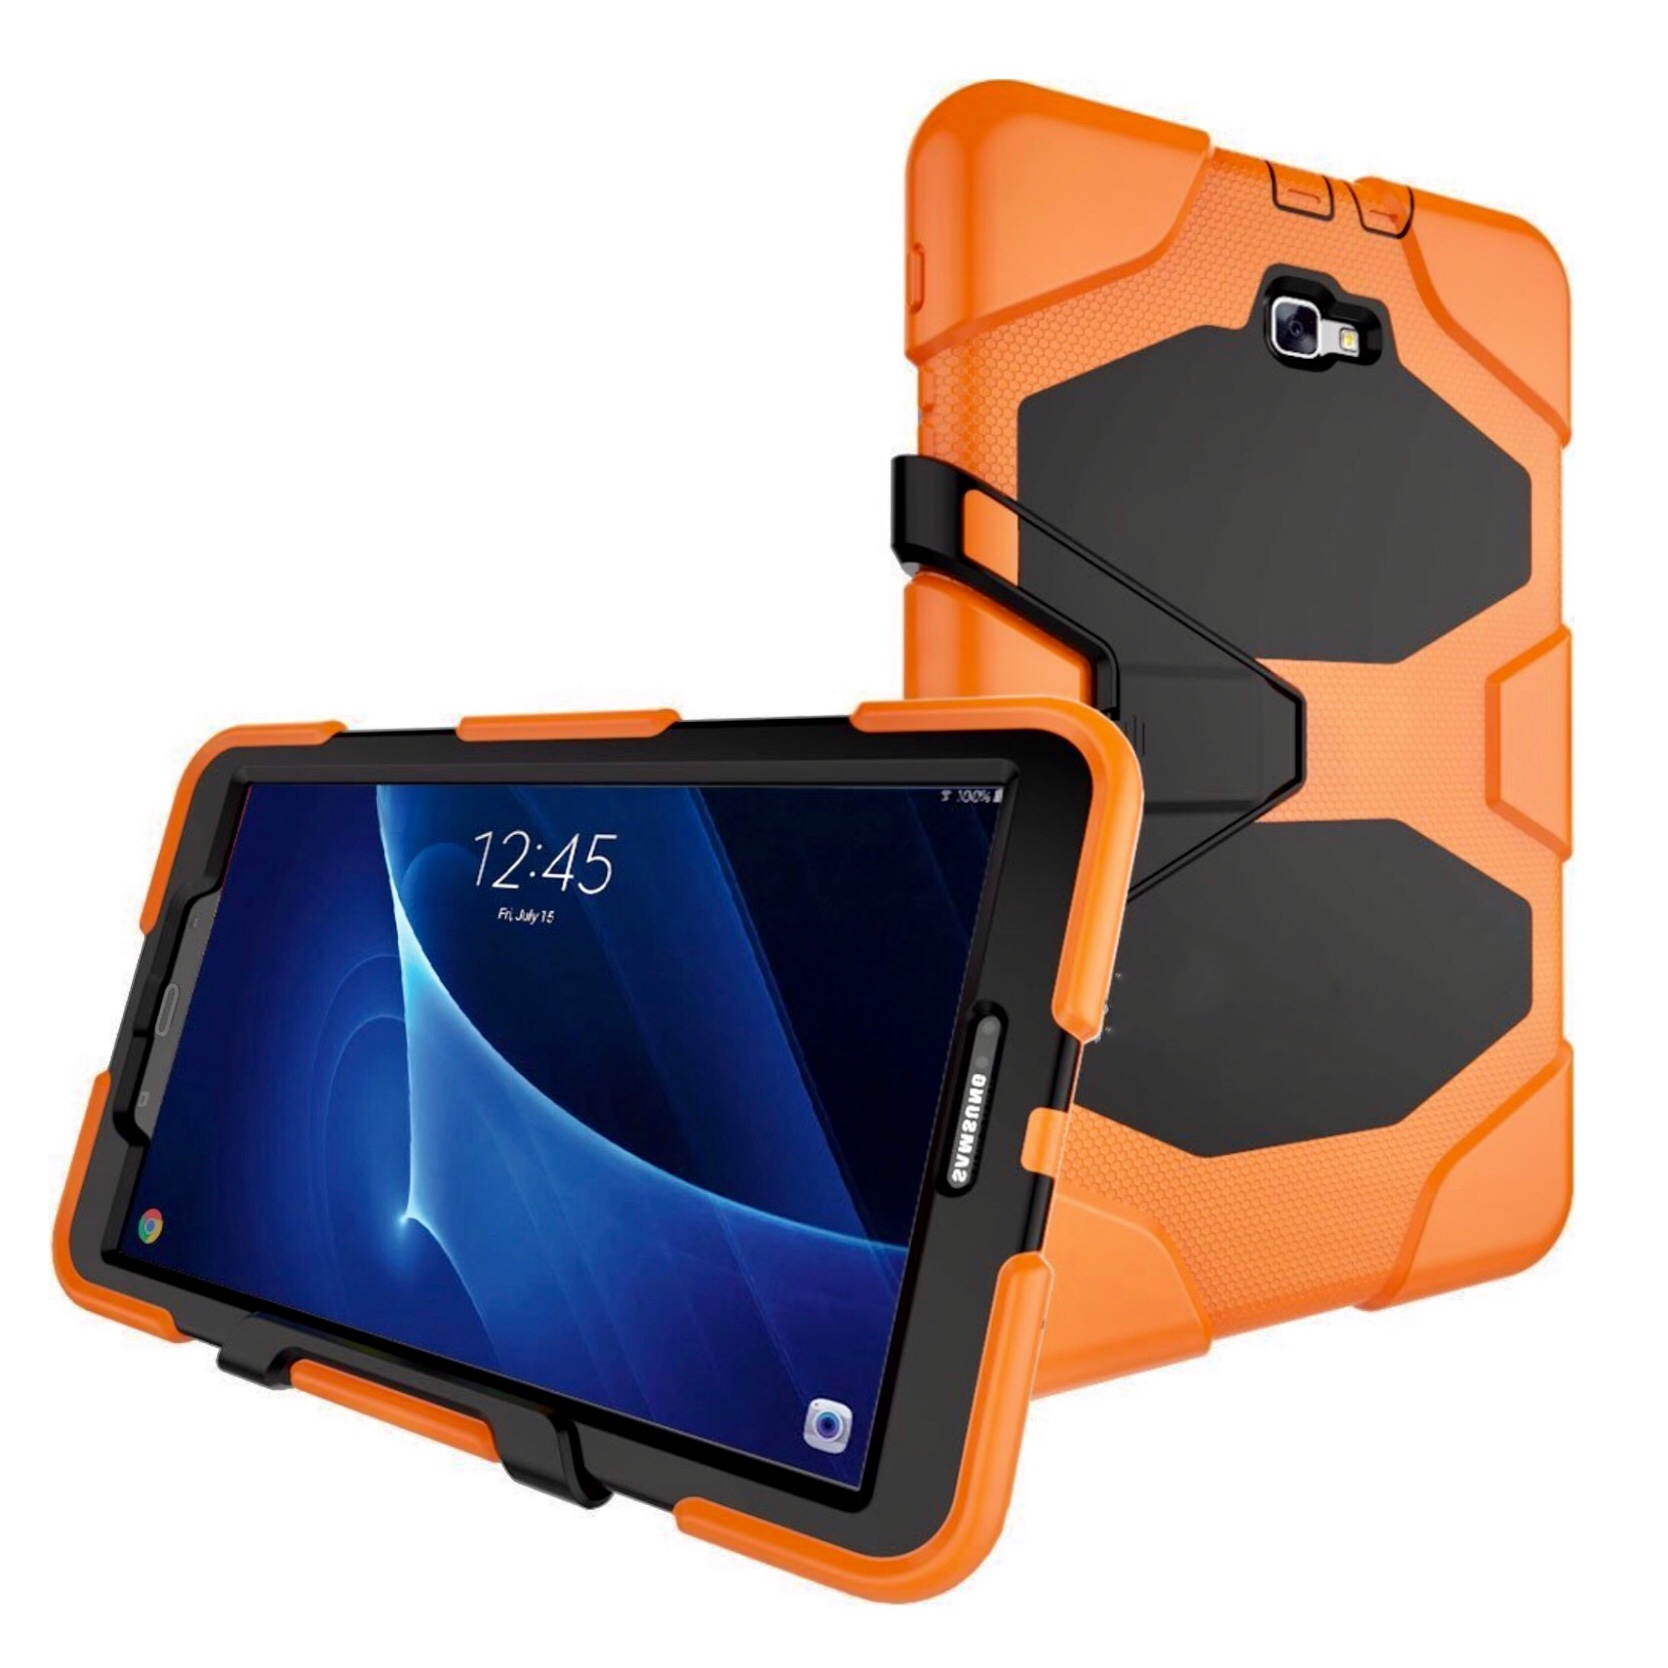 exclusive deals where can i buy to buy Coque Samsung Galaxy TAB A6 10.1 pouces Protection Vegas Orange